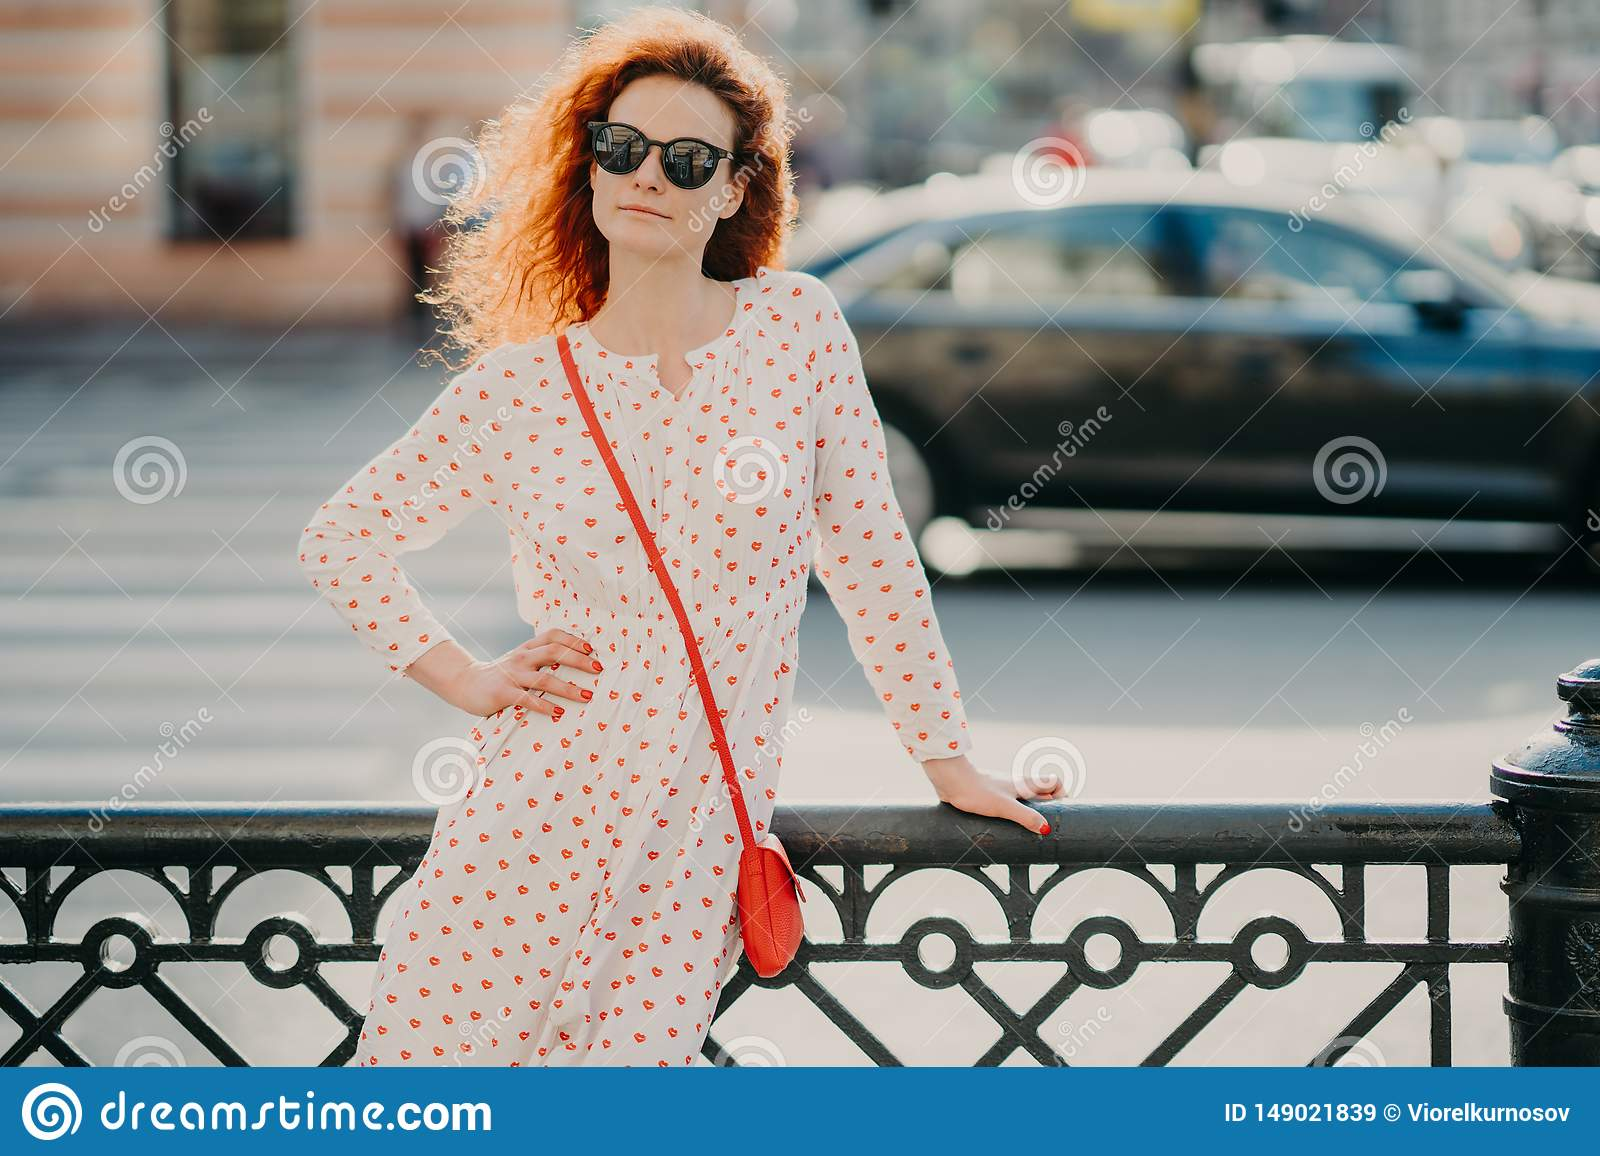 Outdoor shot of satisfied redhead woman keeps one hand on waist, other on street hence, poses over blurred urban setting, wears